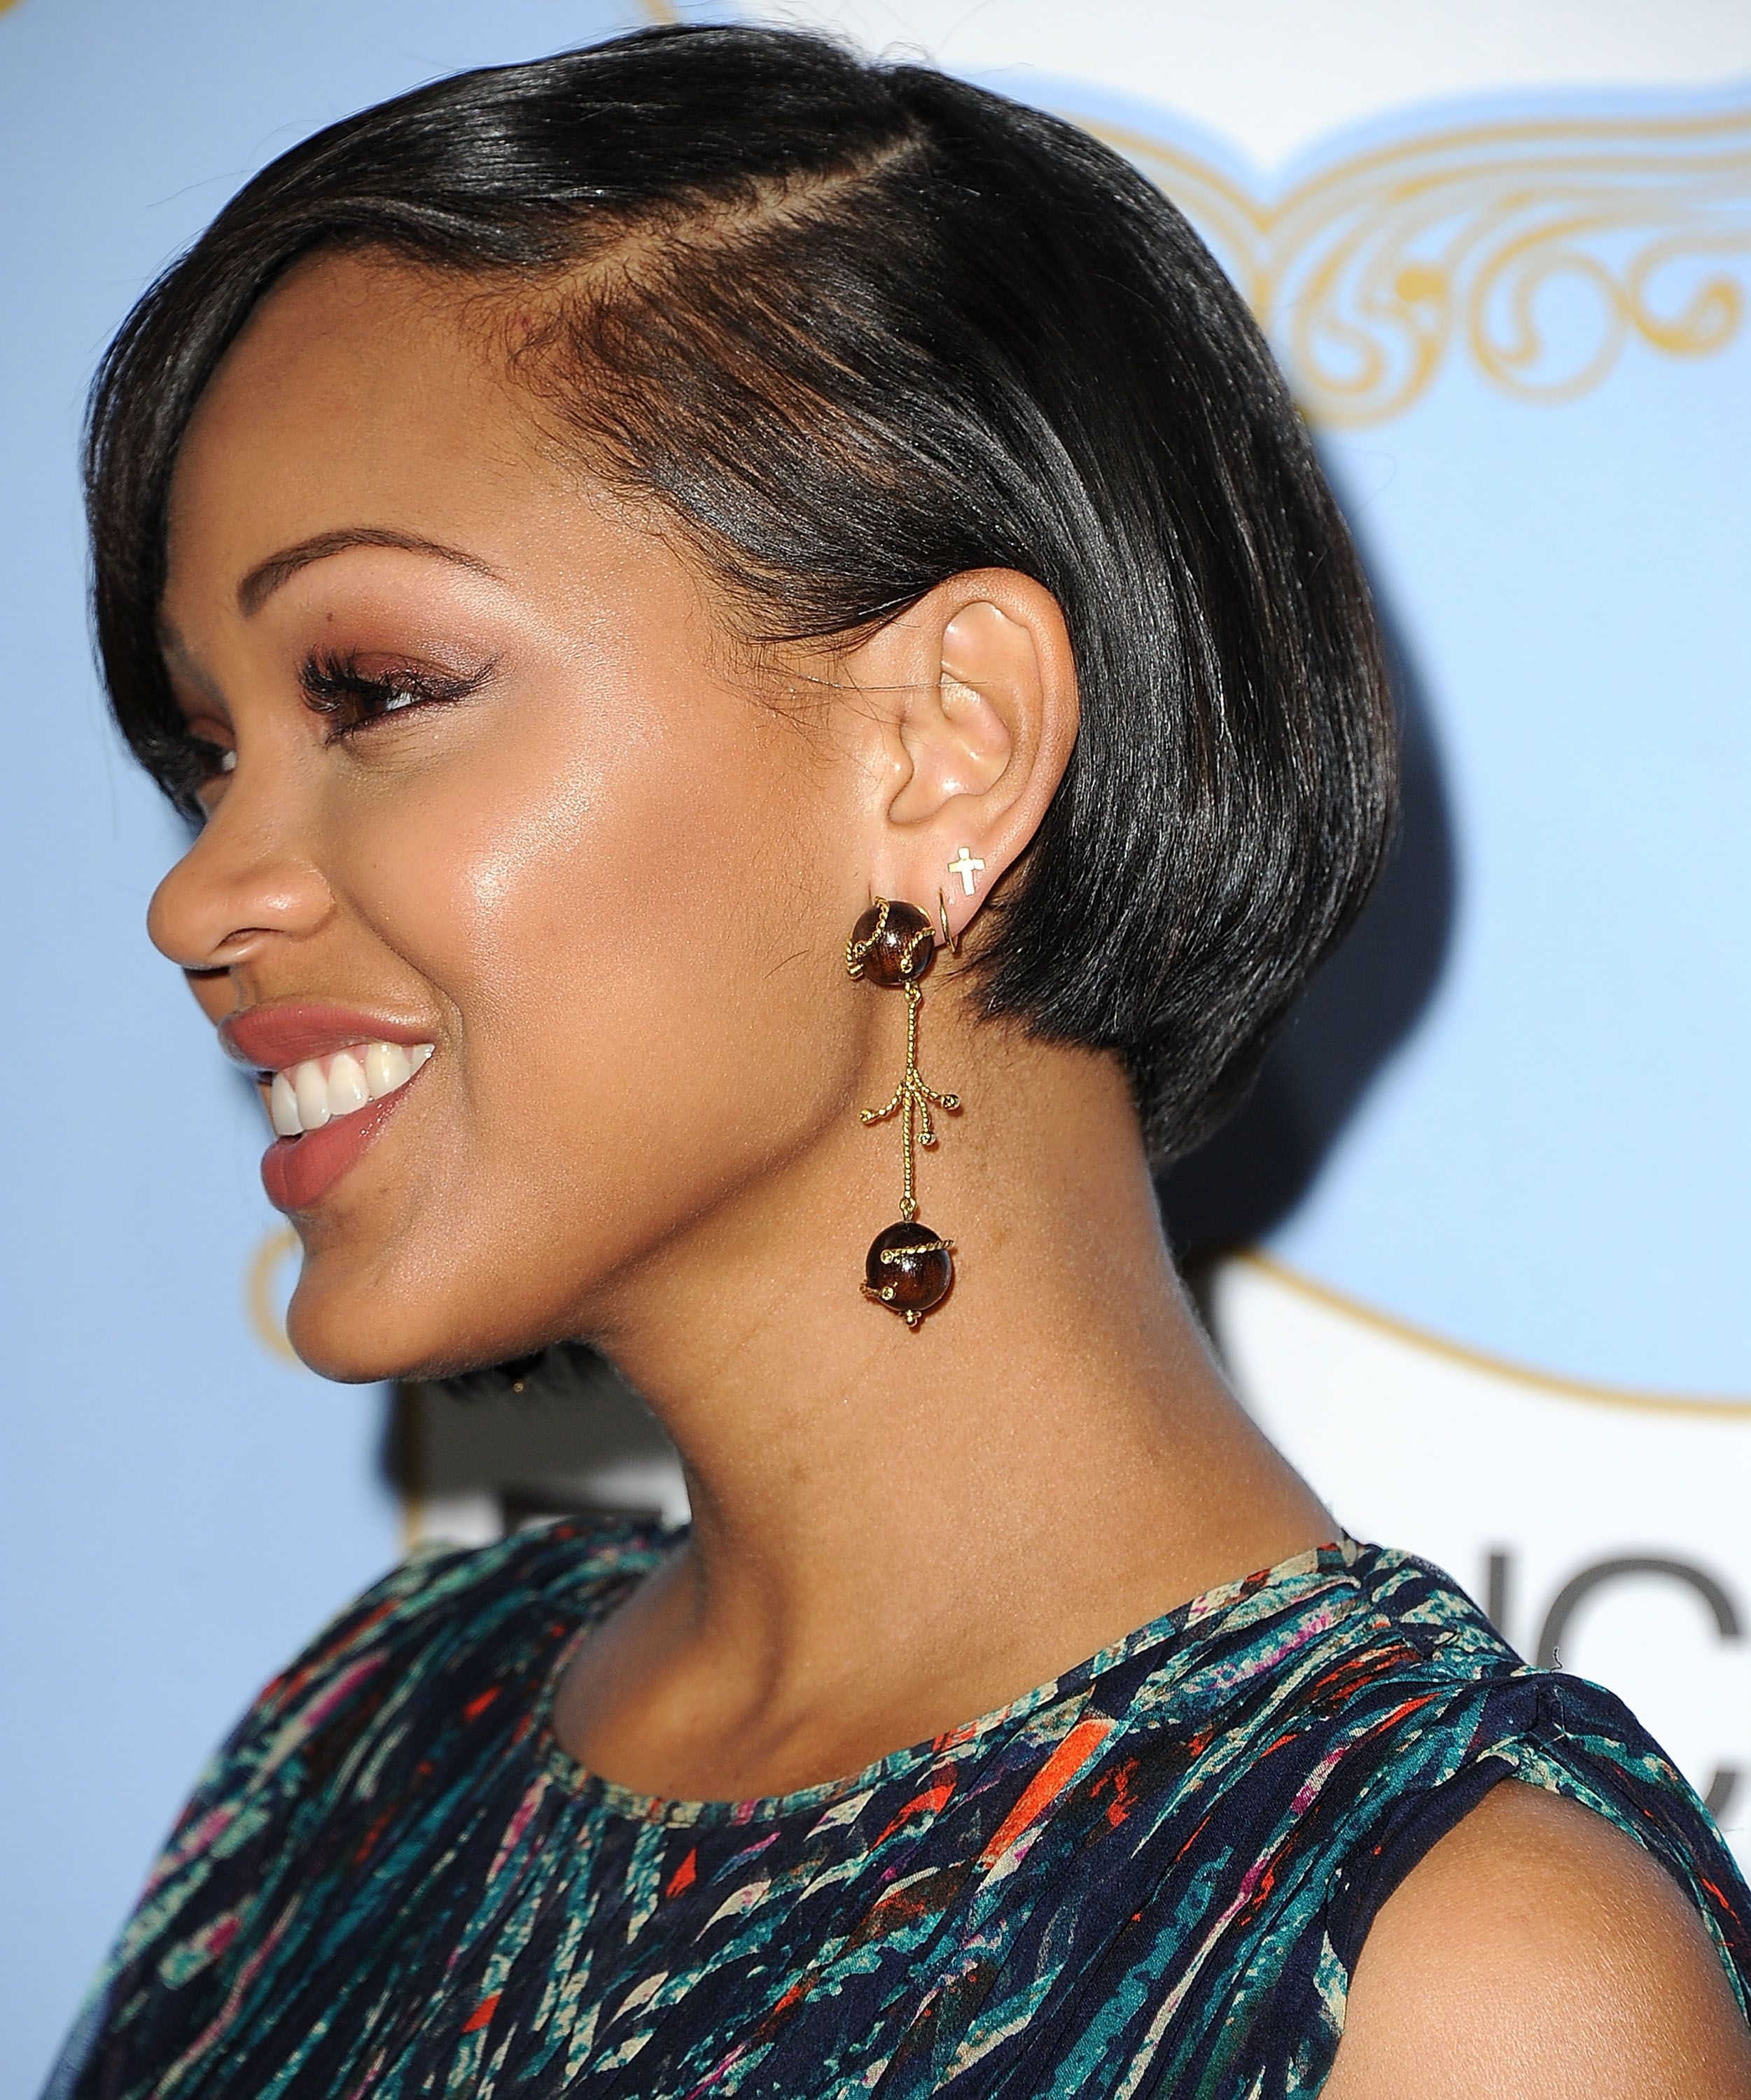 Marvelous 1000 Images About Megan Good On Pinterest Short Hairstyles Gunalazisus